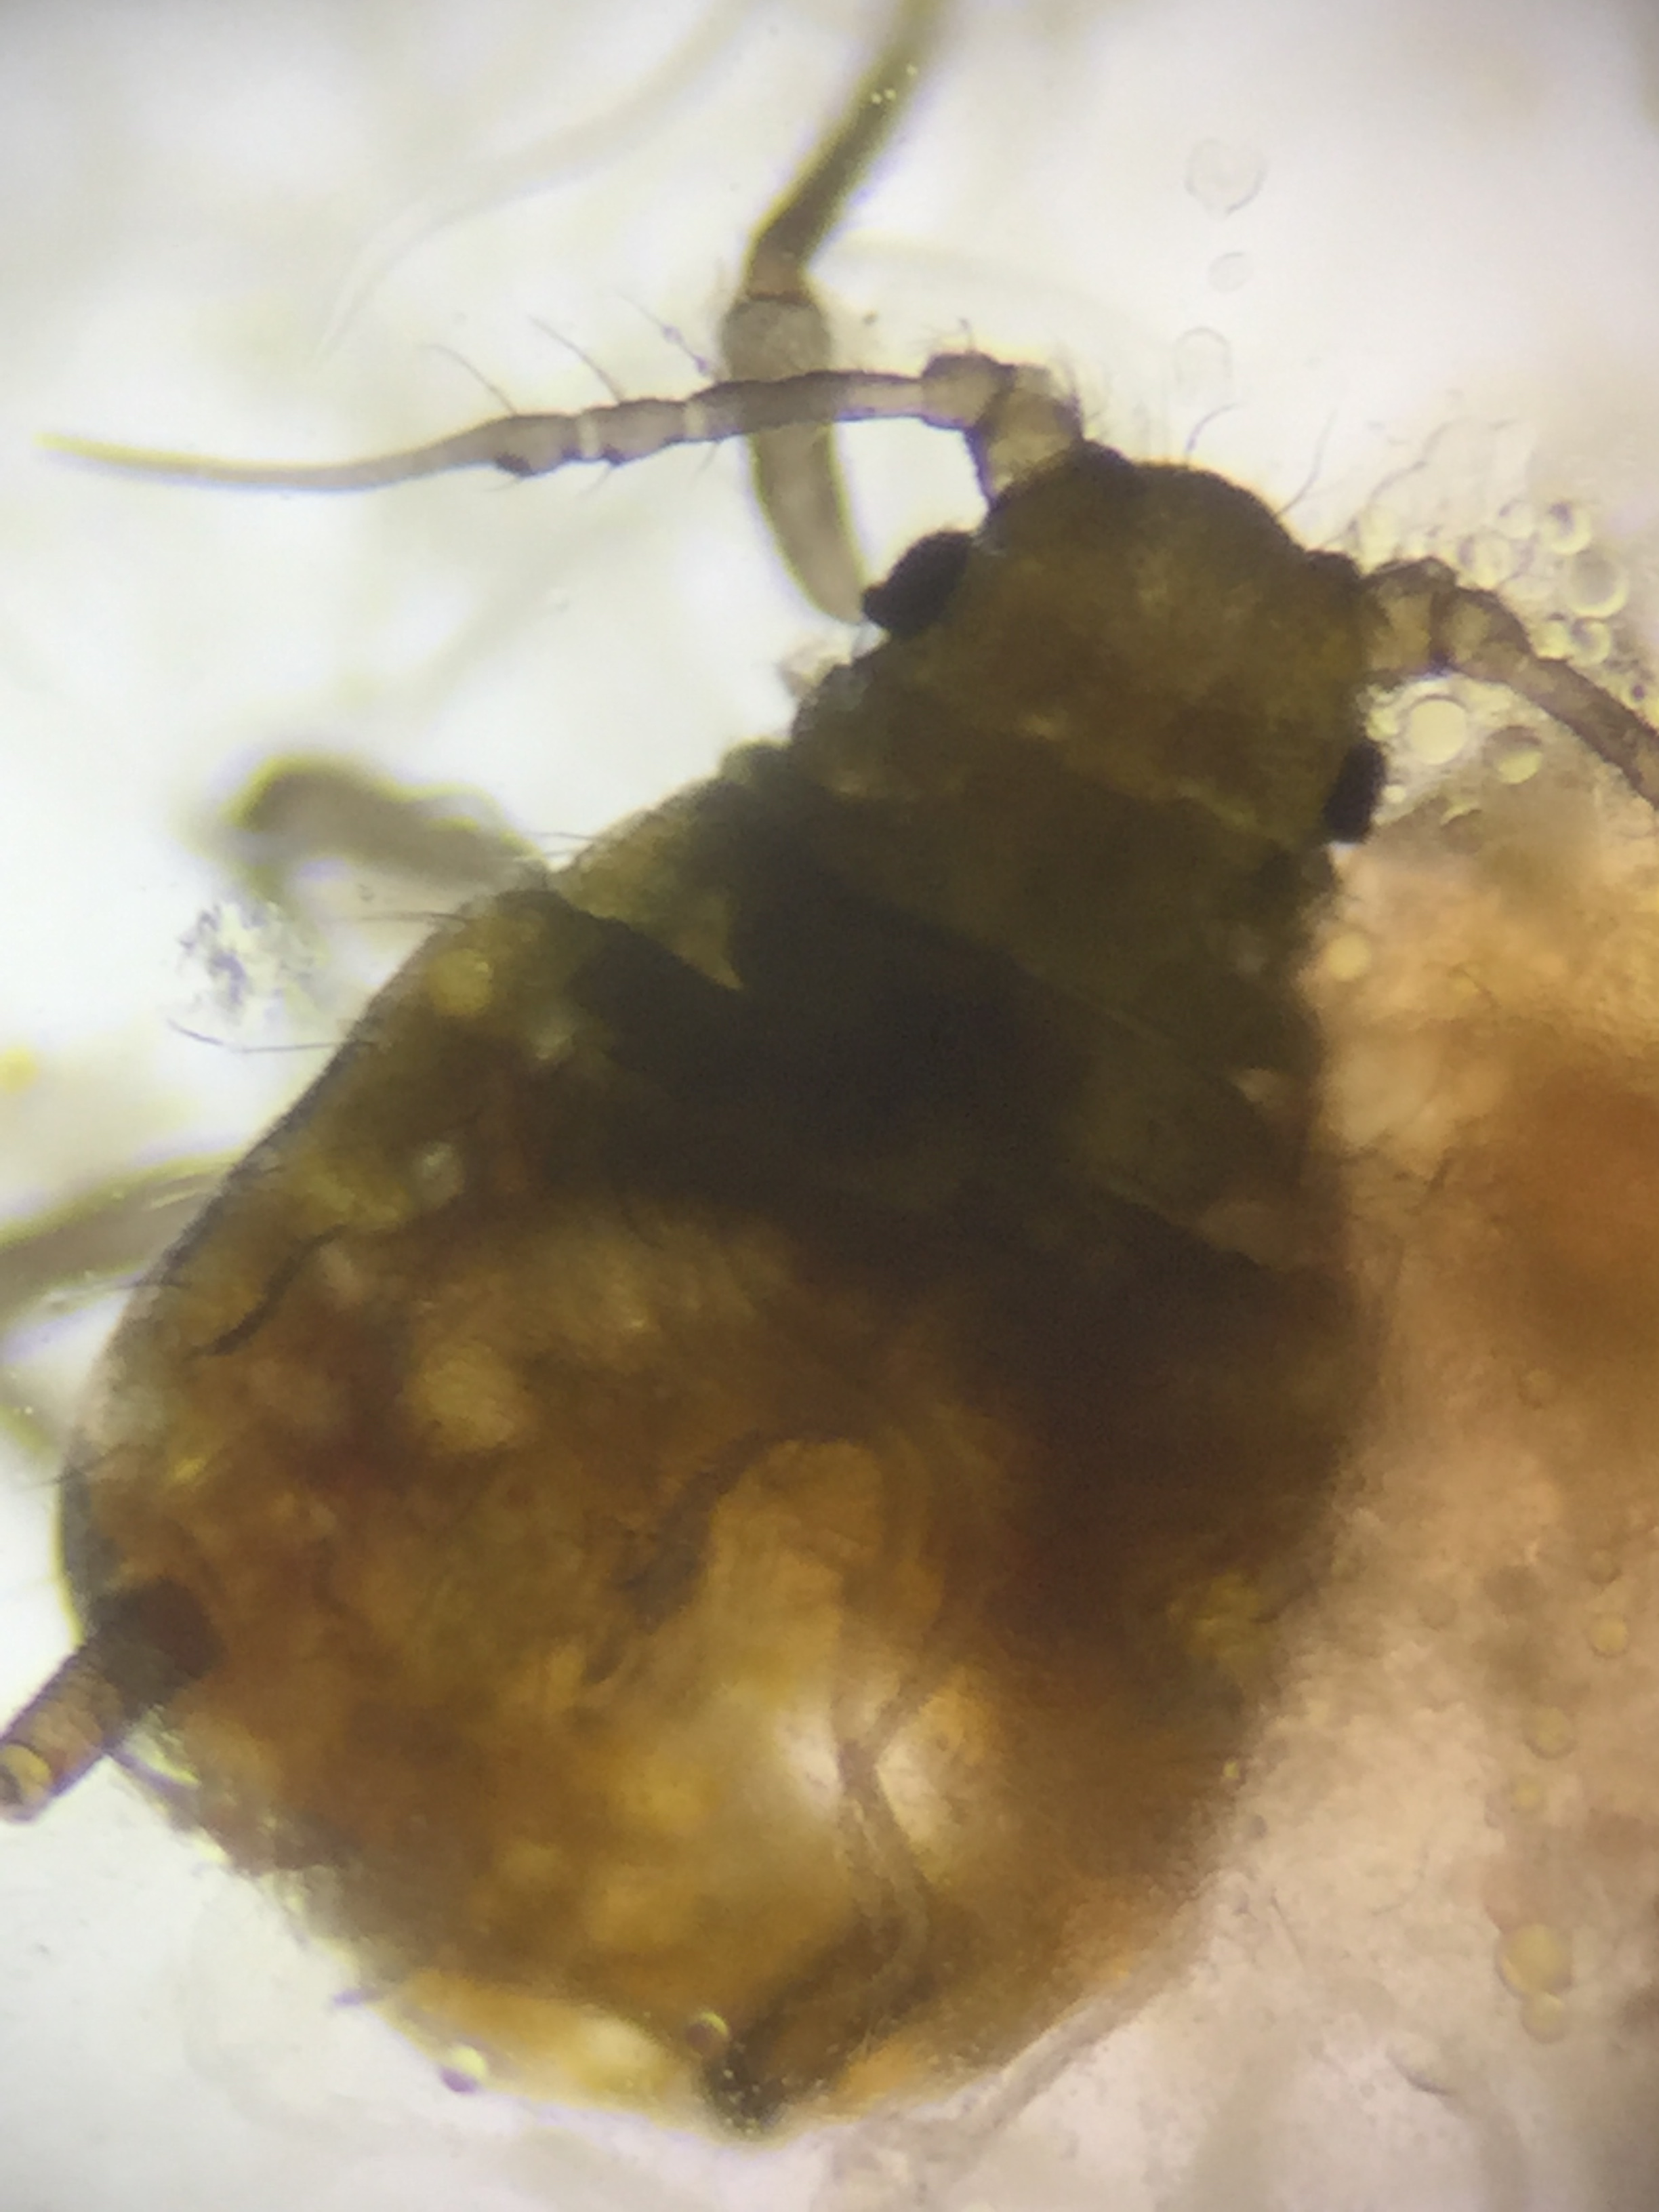 Upon puncturing the thorax of the root aphid, the nematodes engulfed the cavity.